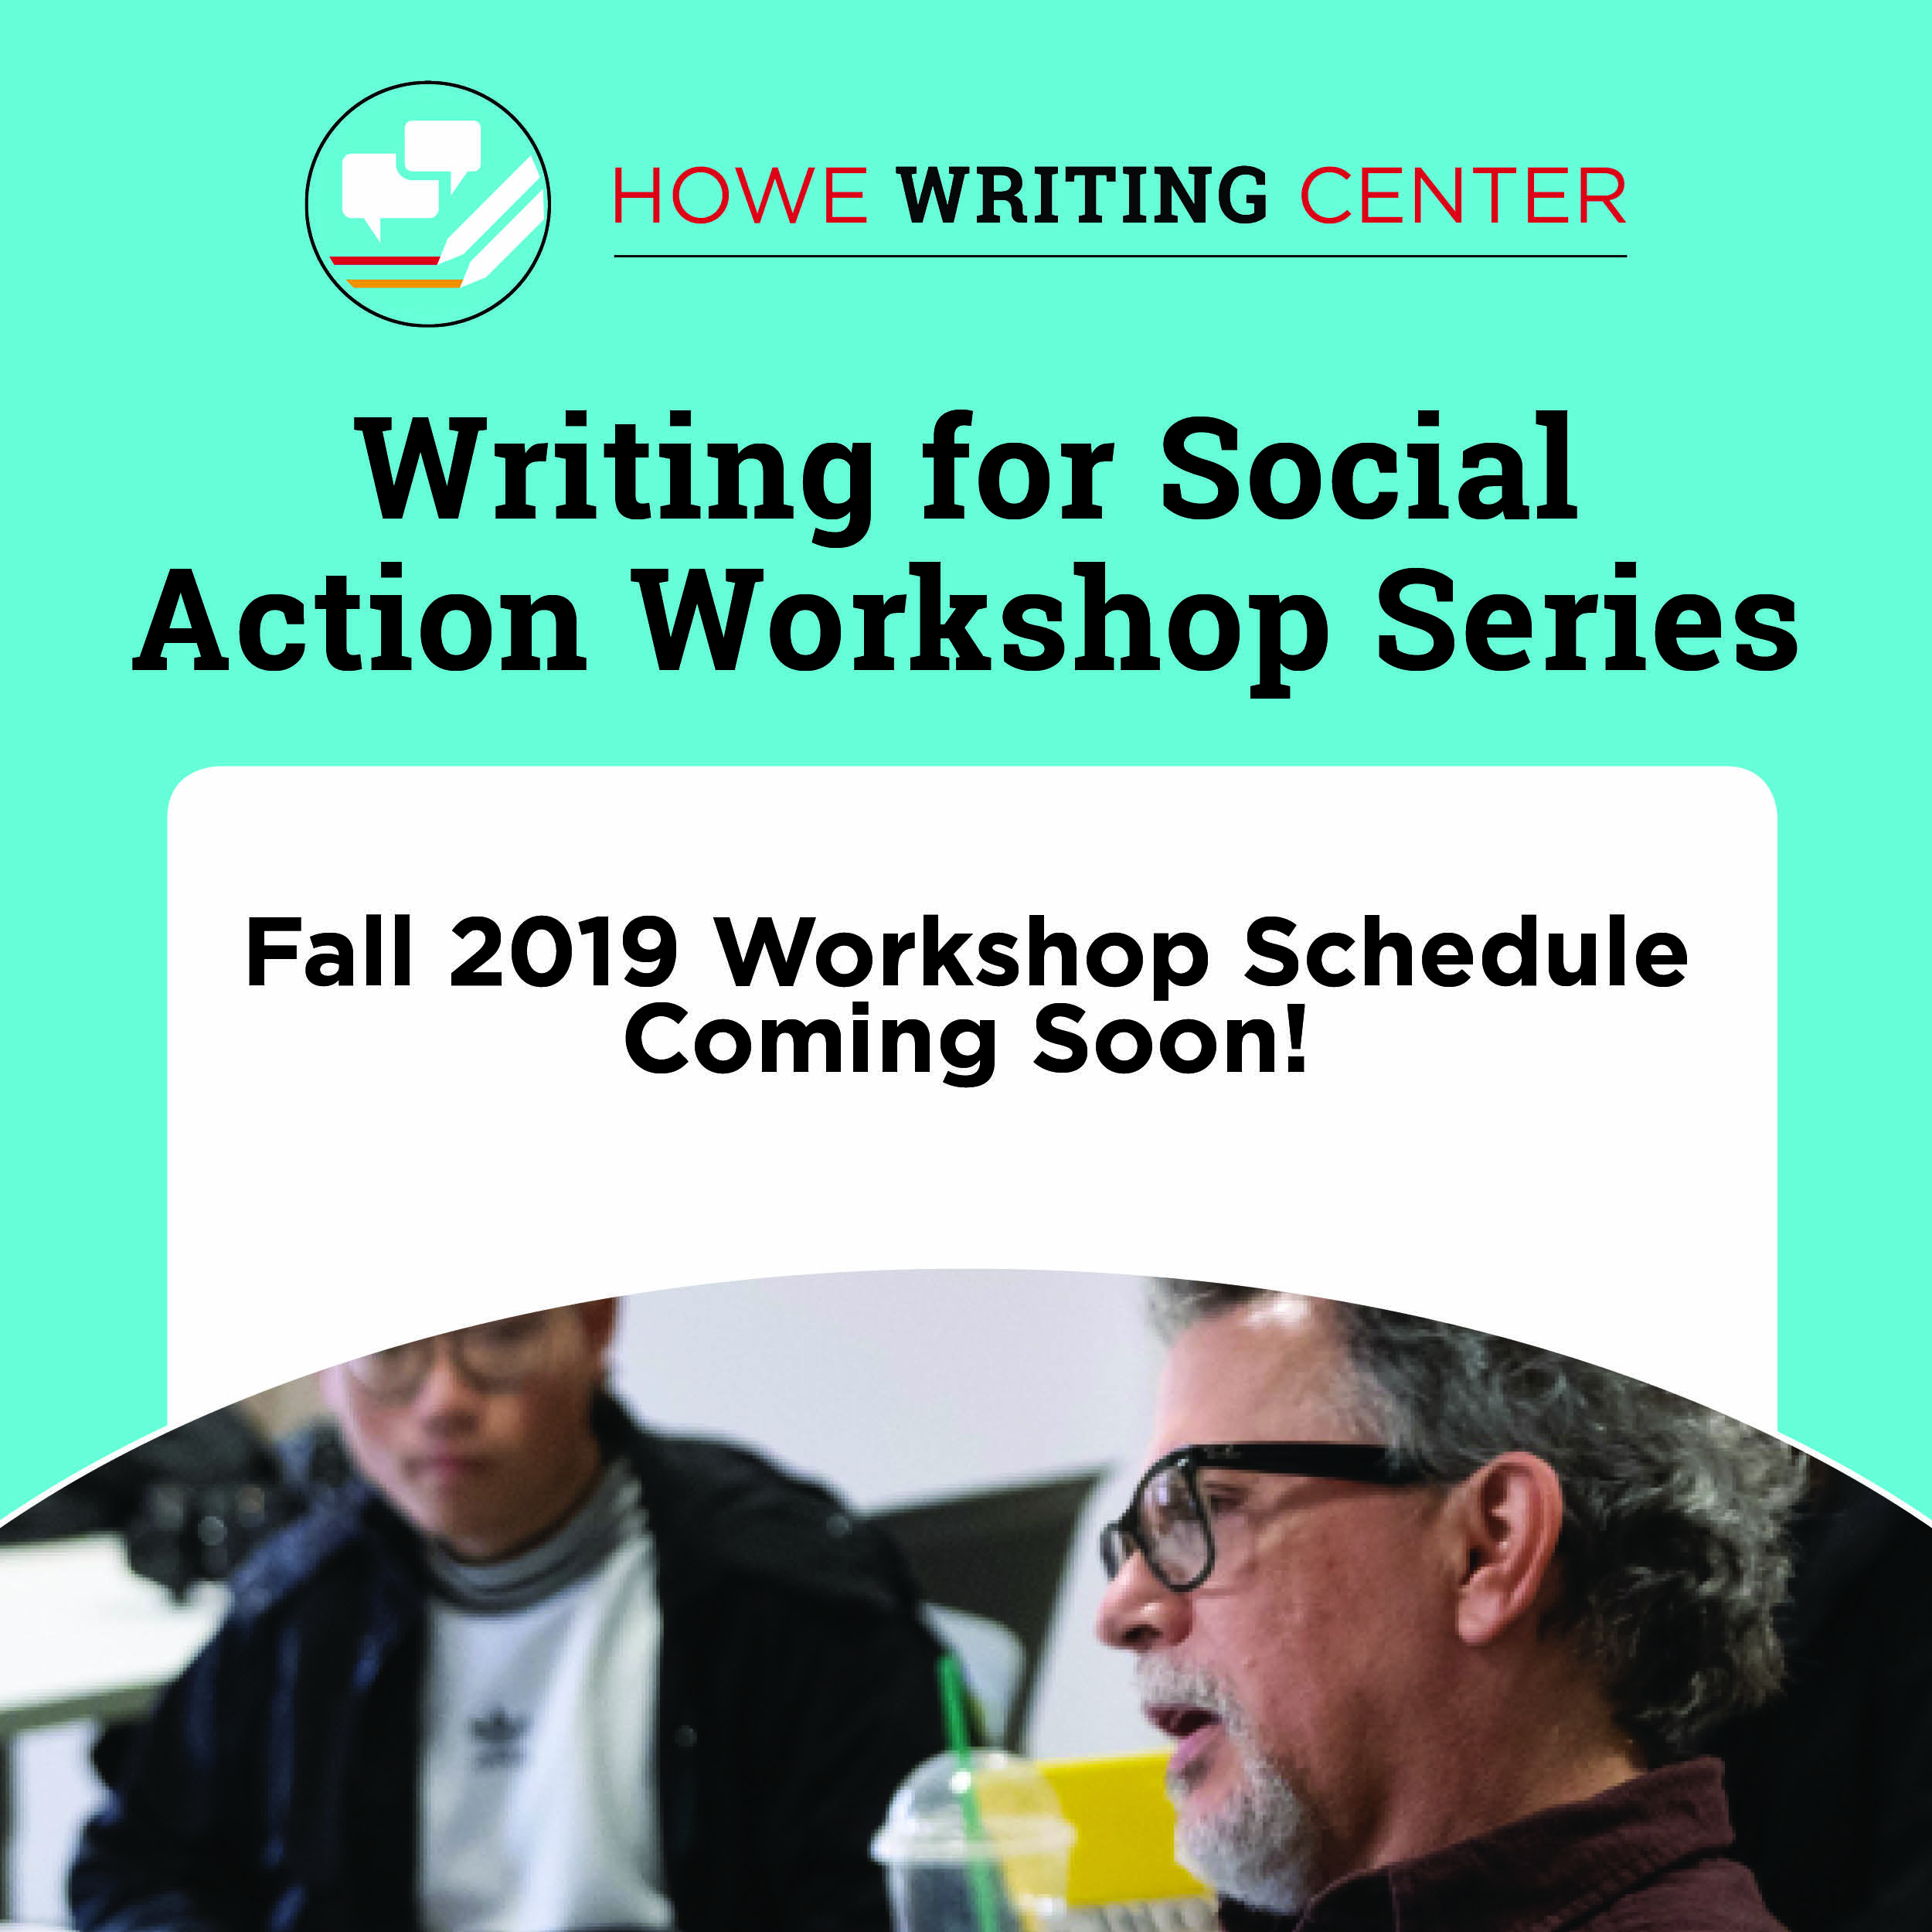 Howe Writing Center. Writing For Social Action Workshop Series. Fall 2019 Workshop Schedule Coming Soon!